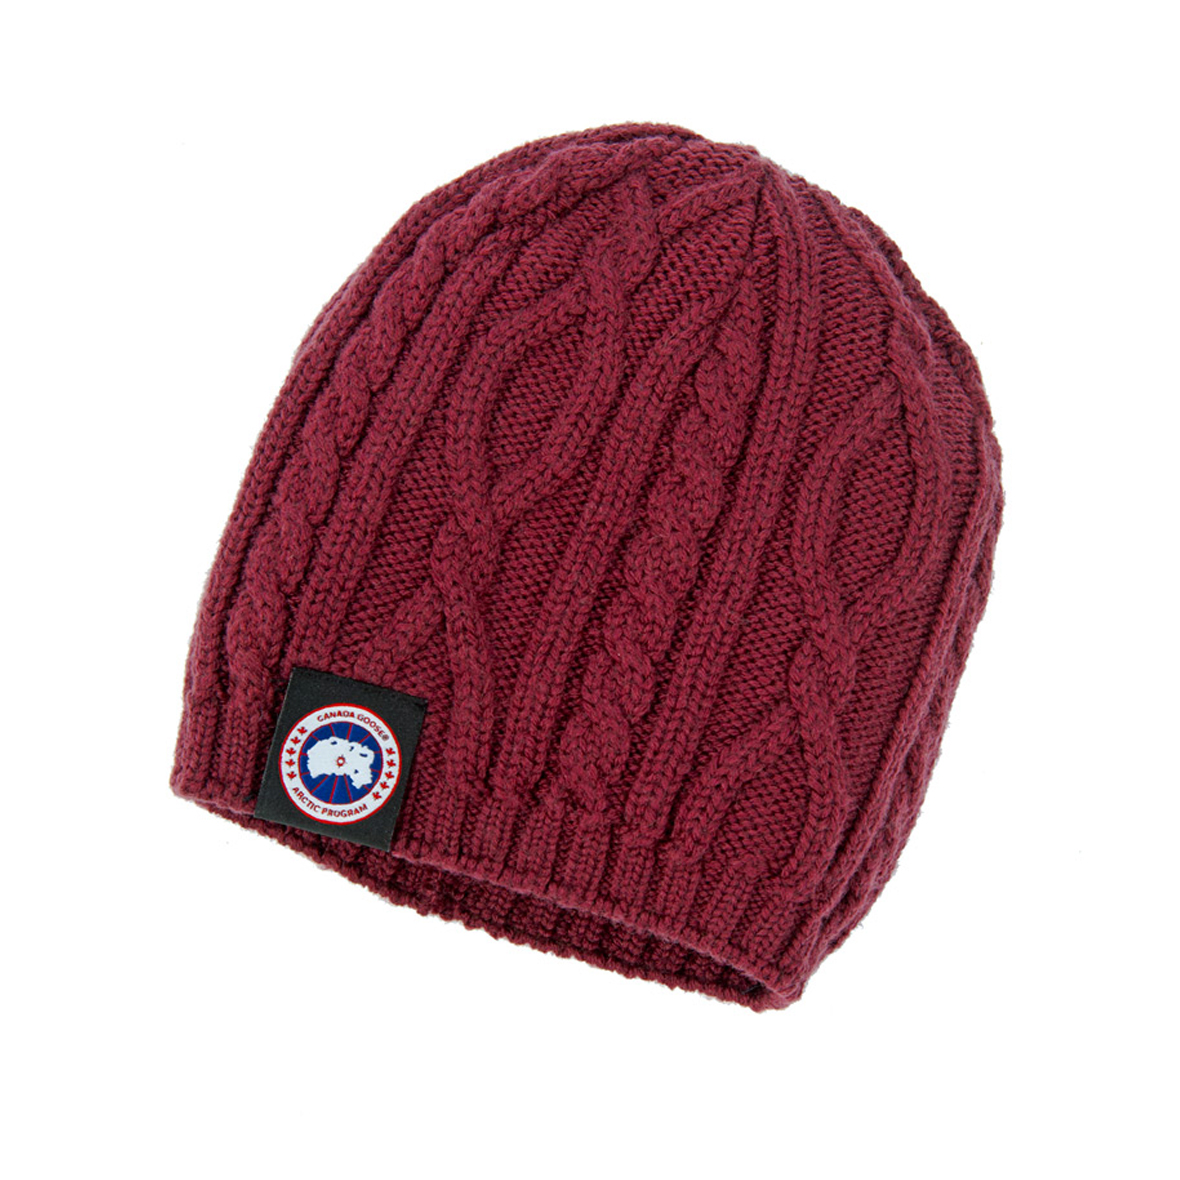 Canada Goose Unisex Merino Cable-Knit Beanie BERRY